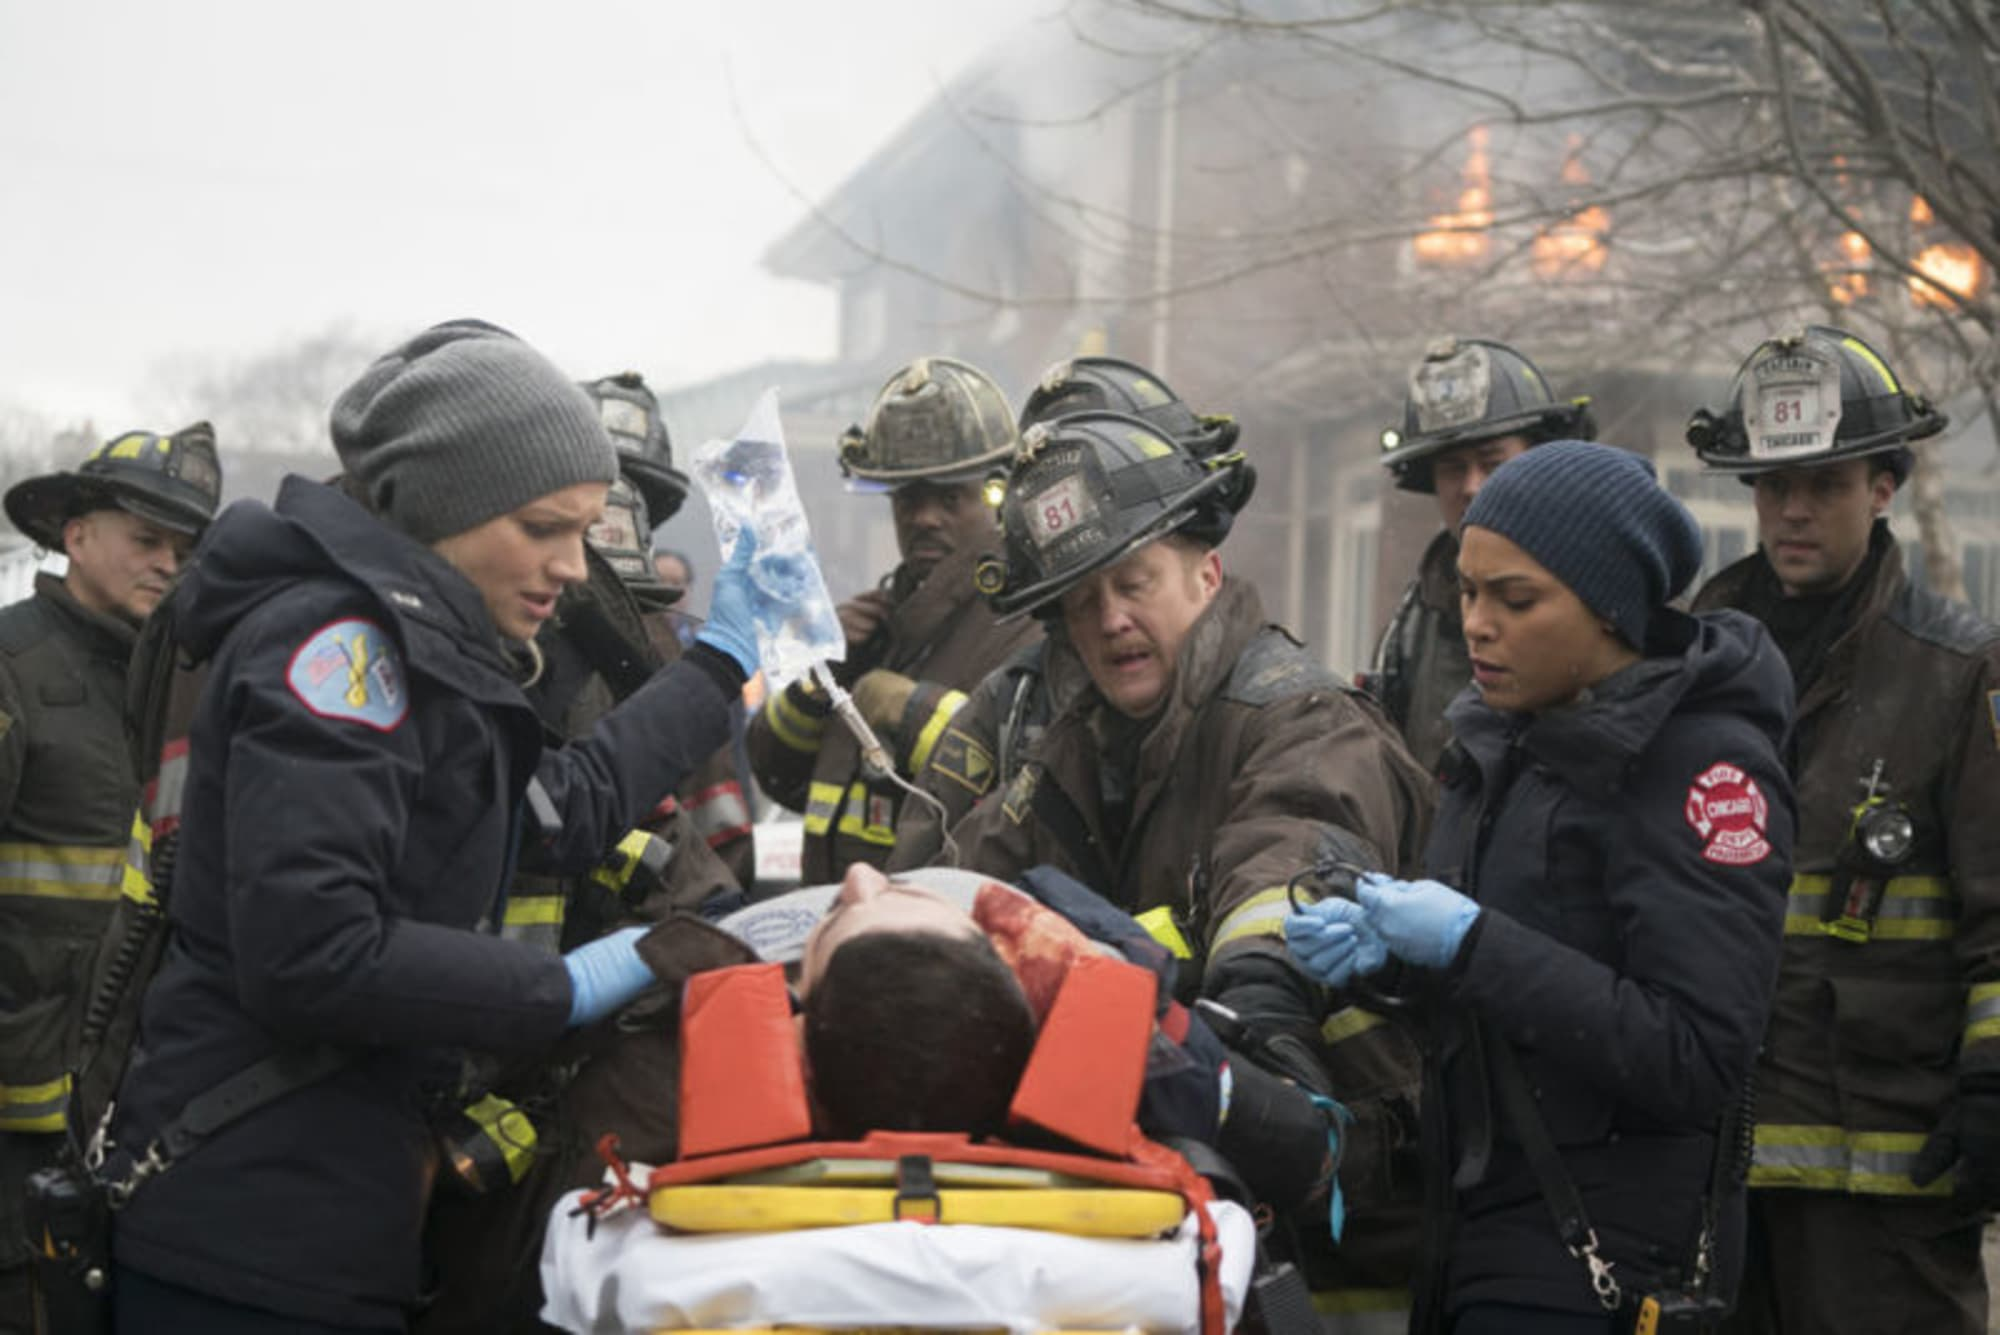 Chicago Fire Season 6 Episode 14 And Episode 15 Recap And Review